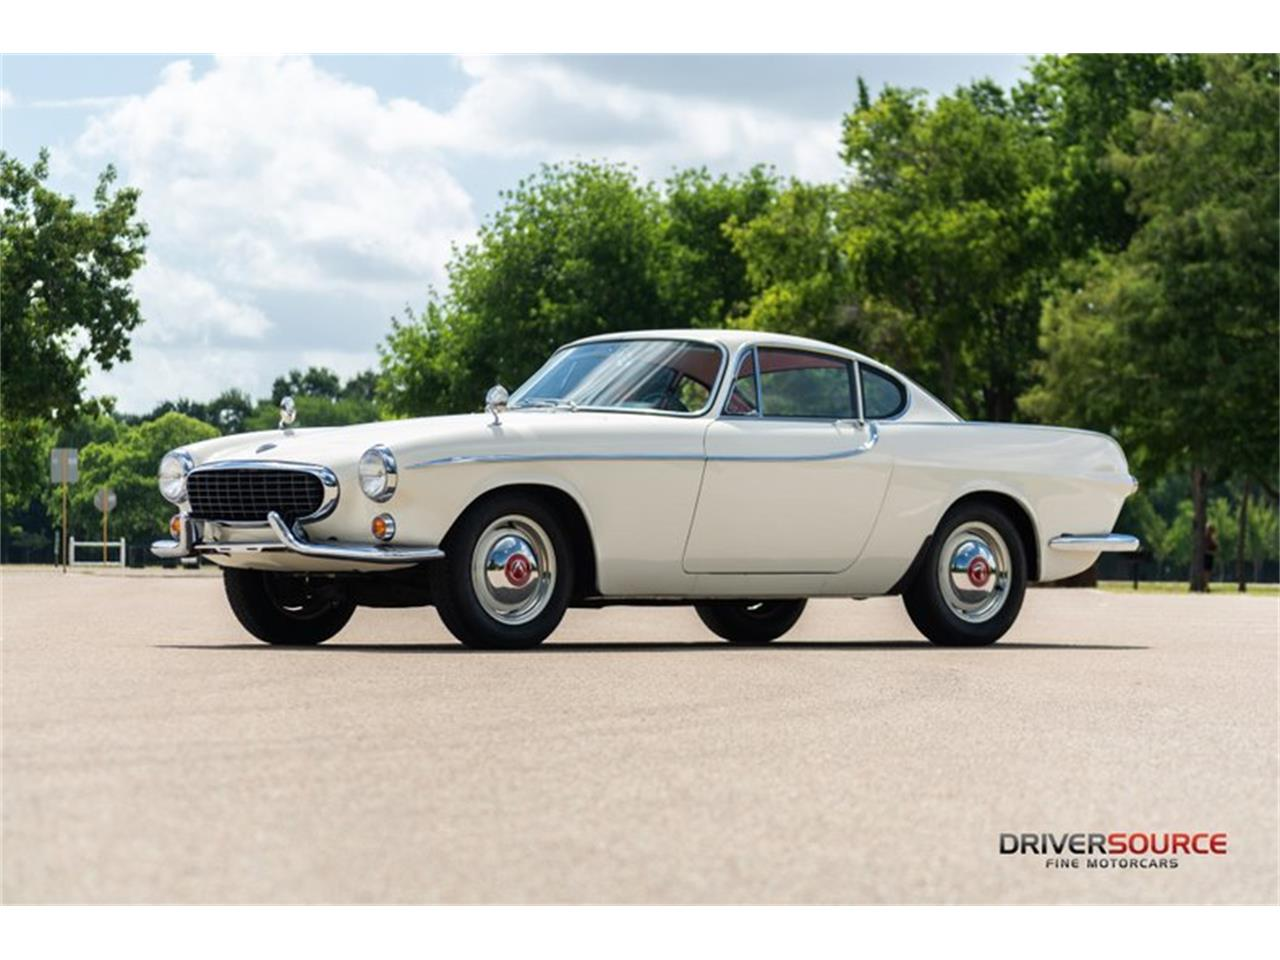 Large Picture of '64 P1800E located in Houston Texas Offered by Driversource - NNM3